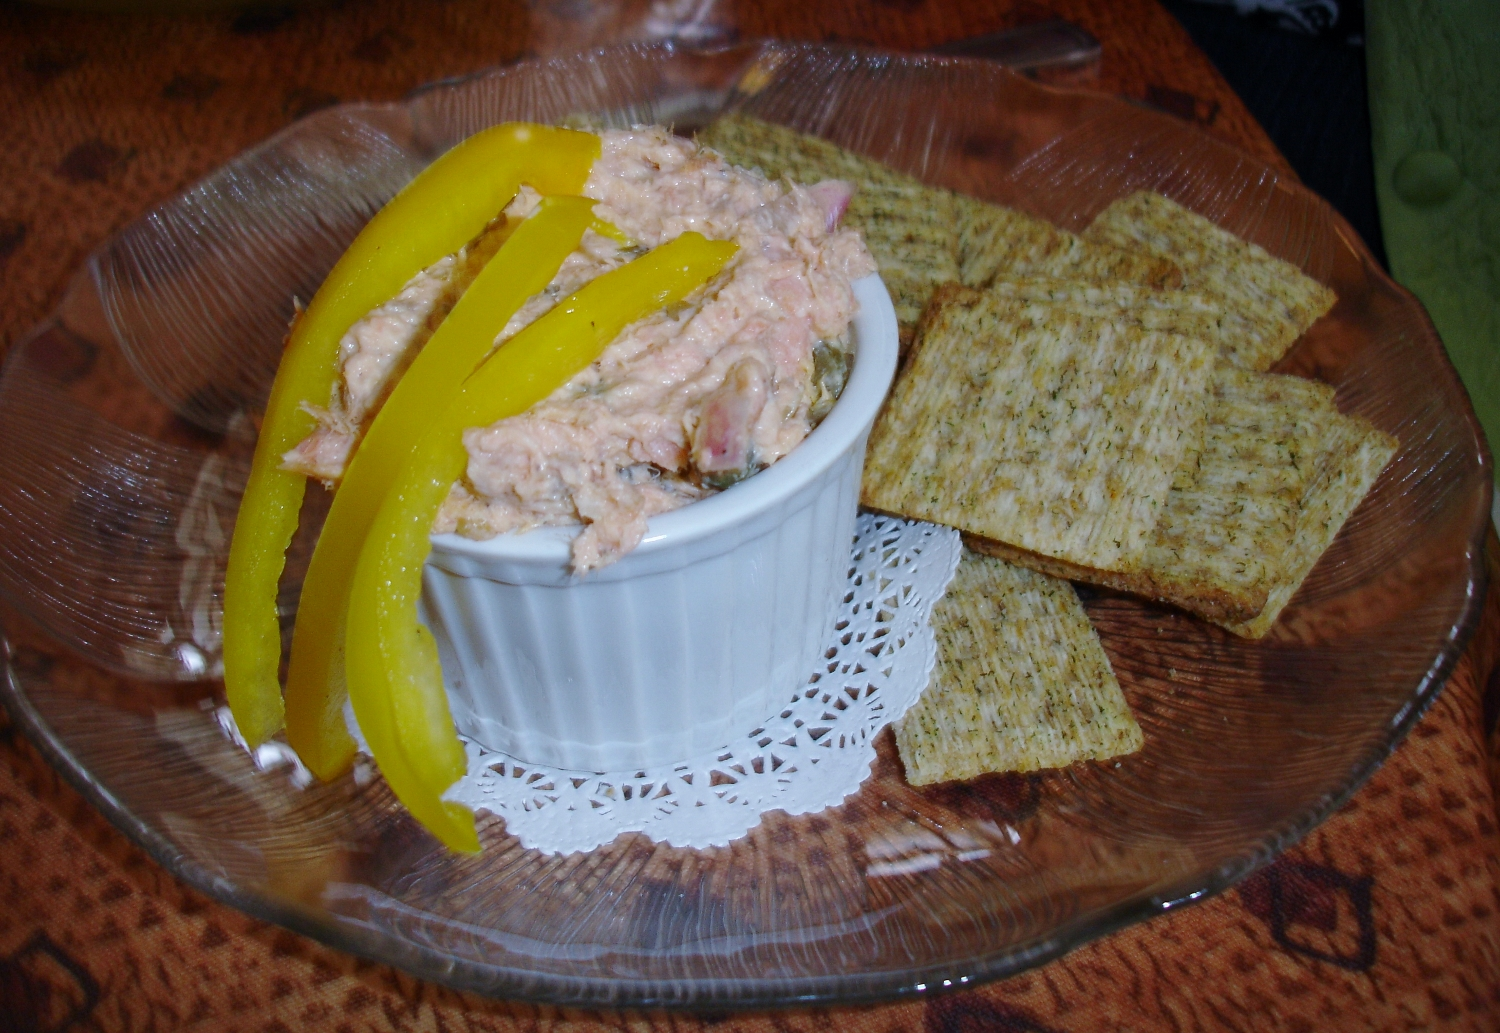 The smoked trout appetizer is rich and smoky. We love the ingenuous appeal of the Triscuits served alongside.